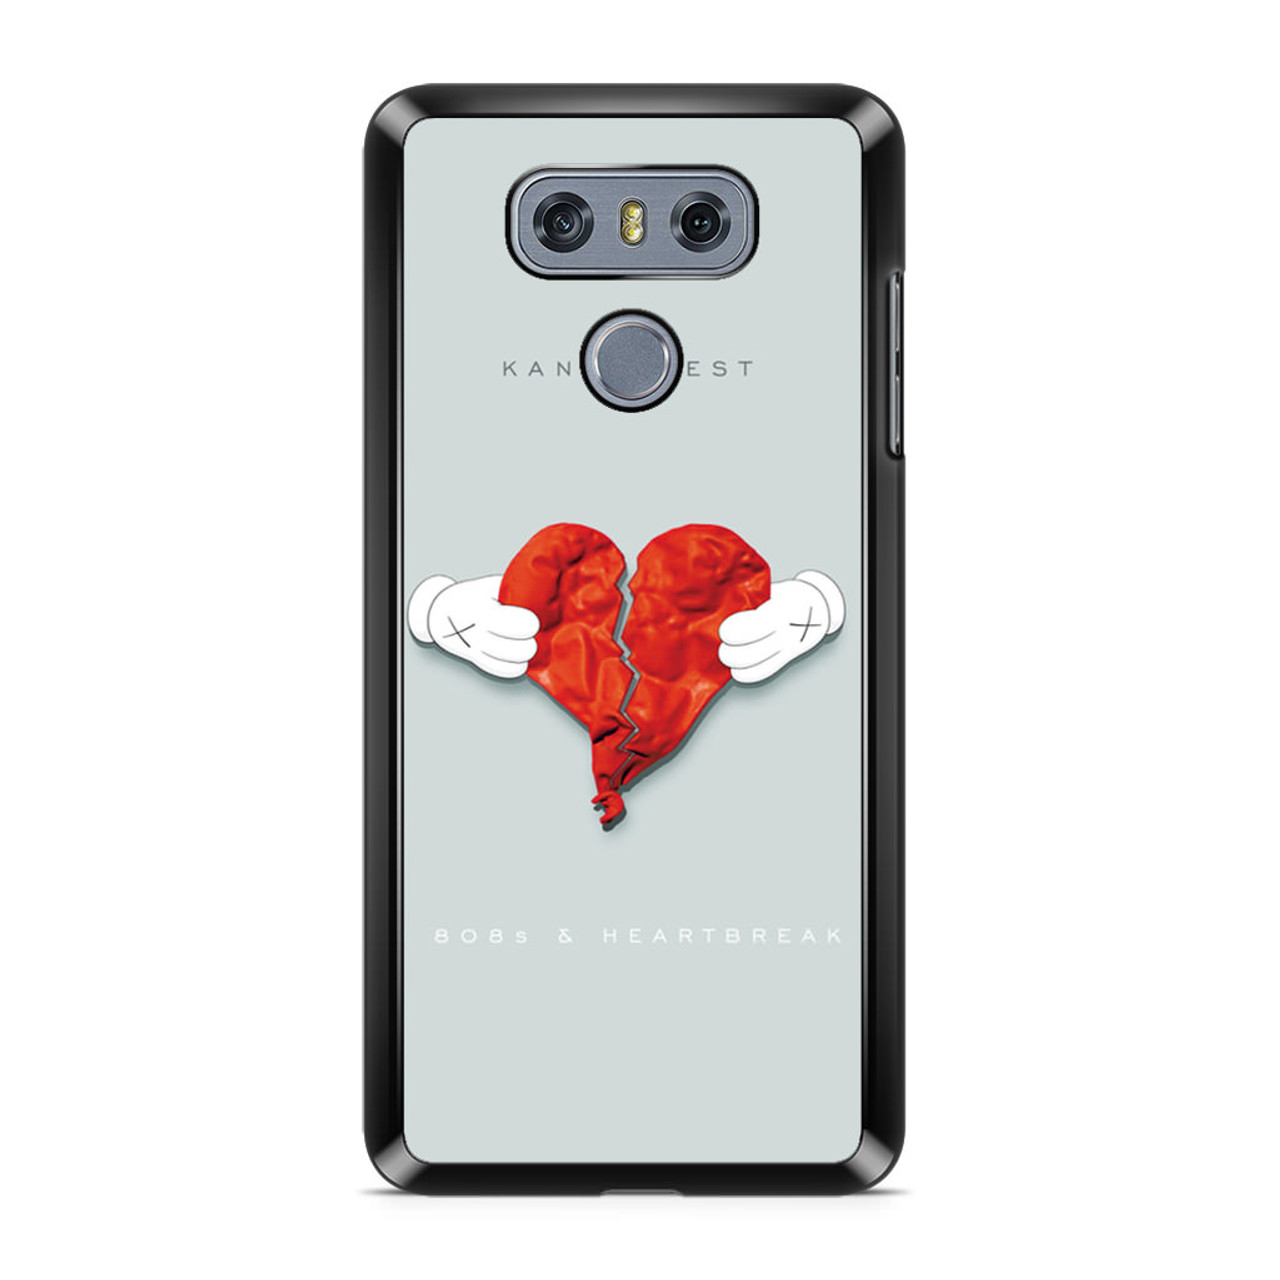 808s Kanye West And Heartbreak LG G6 Case